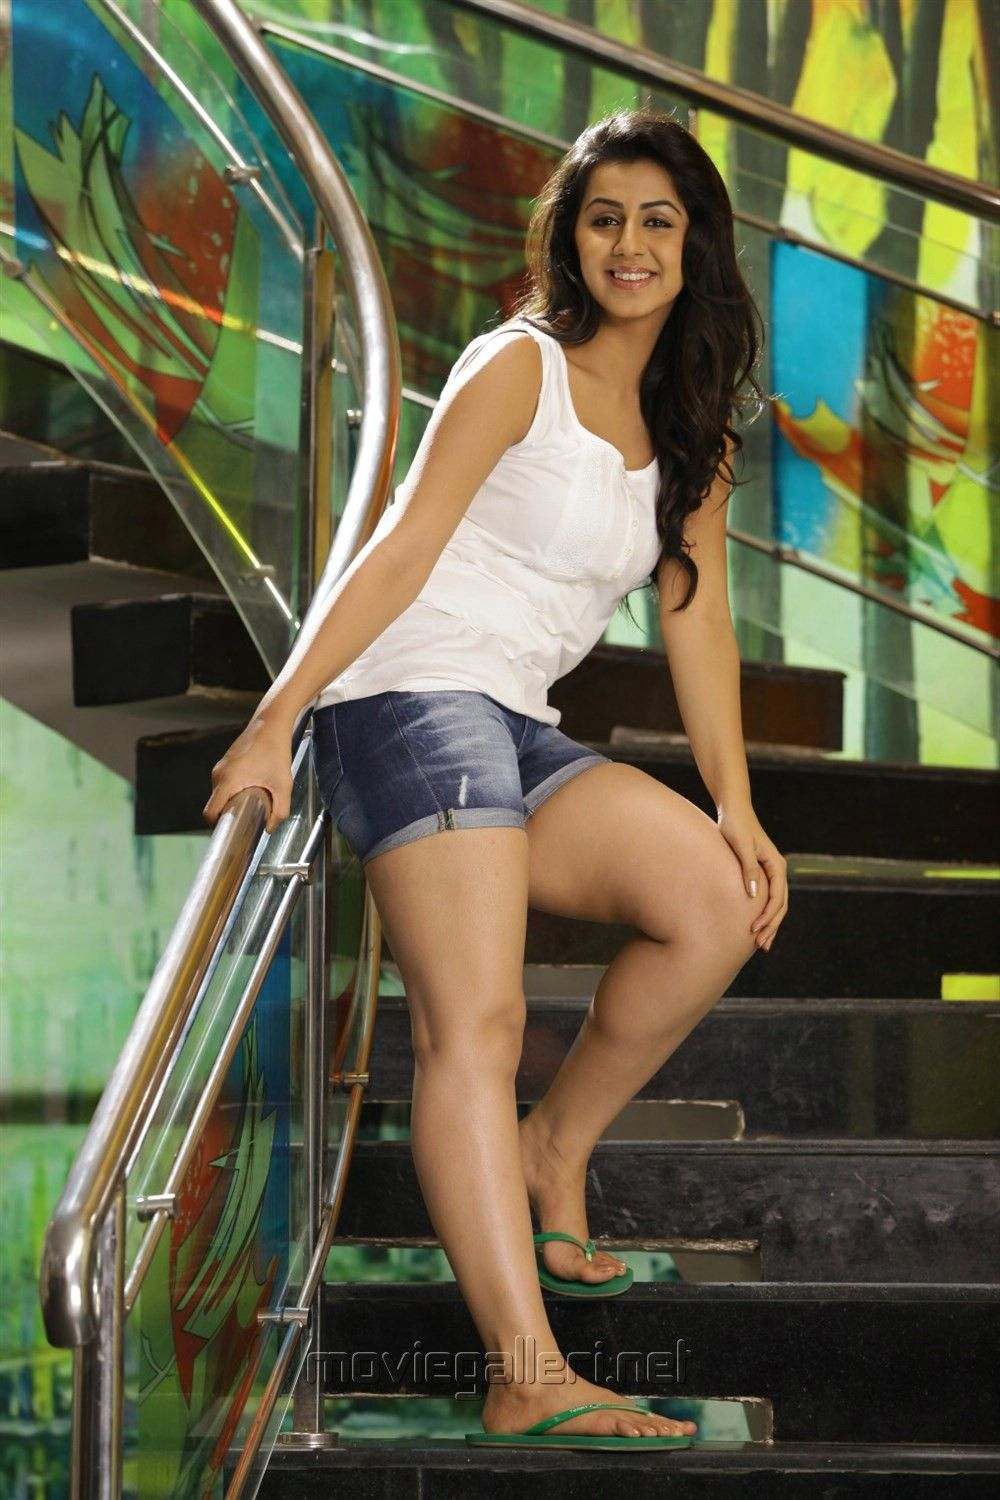 Footgames For Girls Shiva-50454